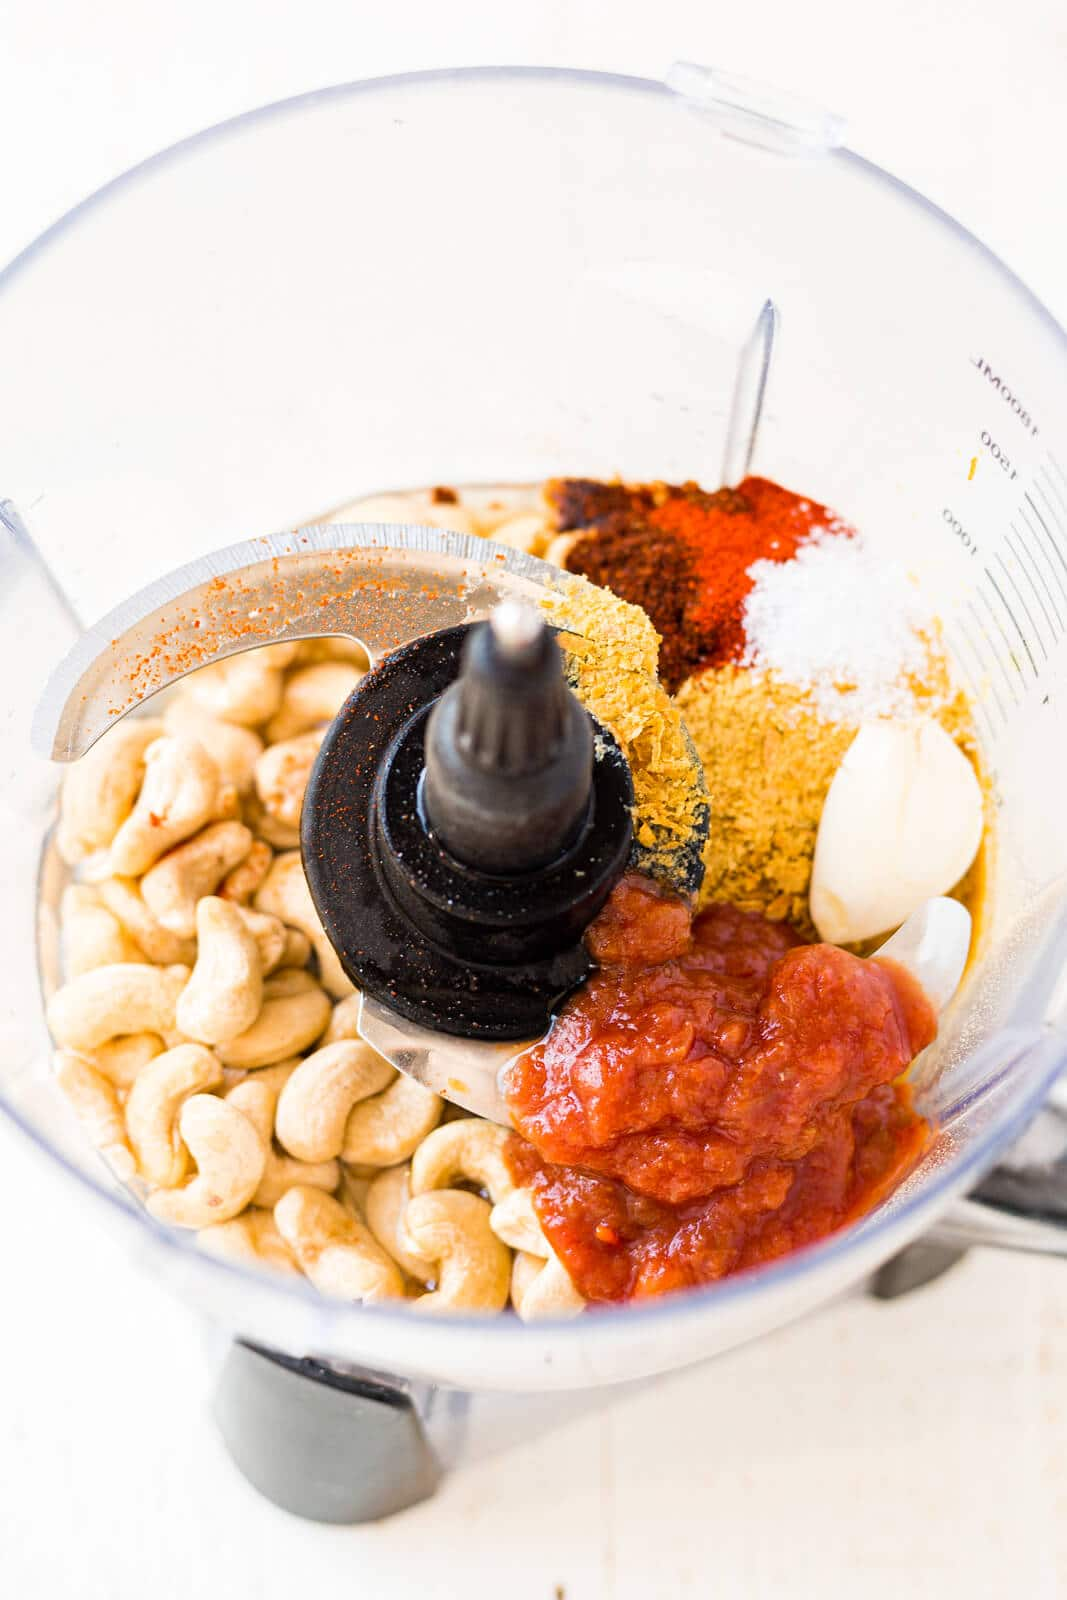 ingredients for cashew queso in the food processor before blending